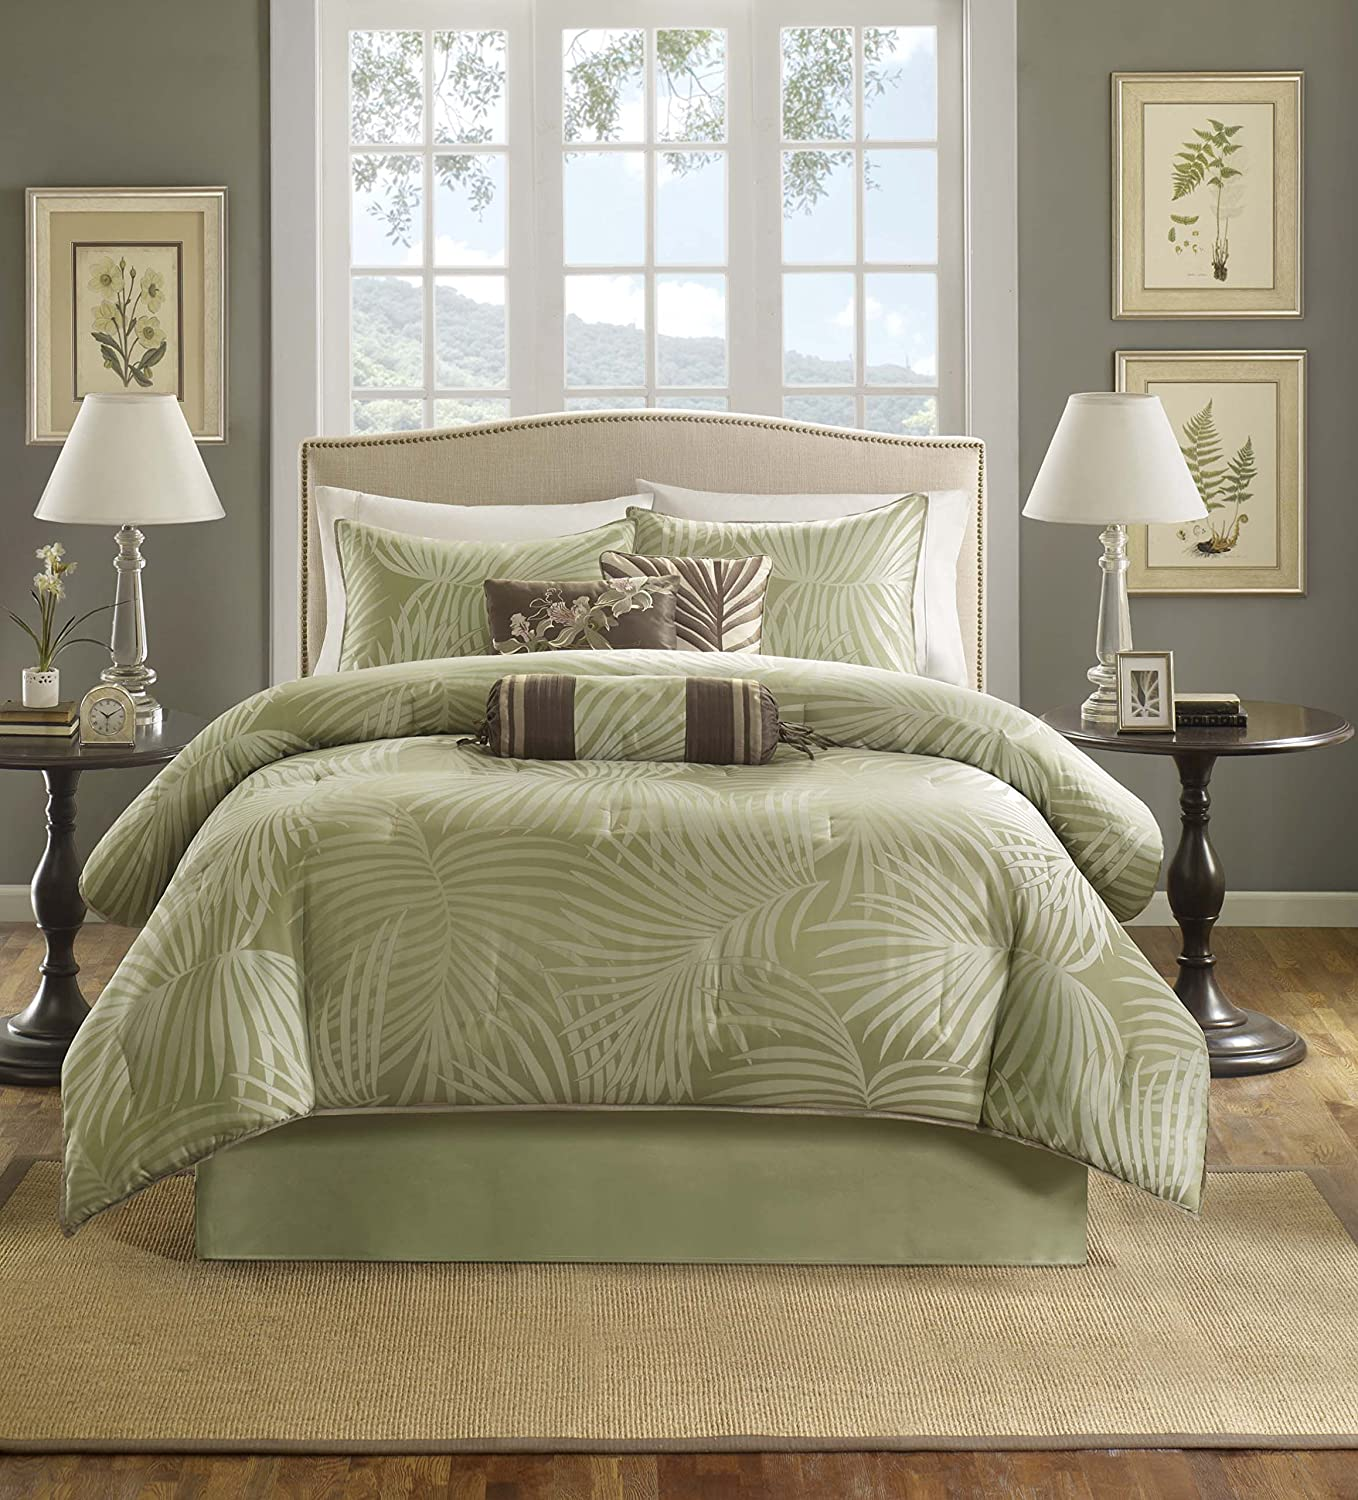 with queen king target twin forest green emerald sage seafoam comforter mint together set of and grey blue in sets bedding full as nursery beddings conjunction well plus size